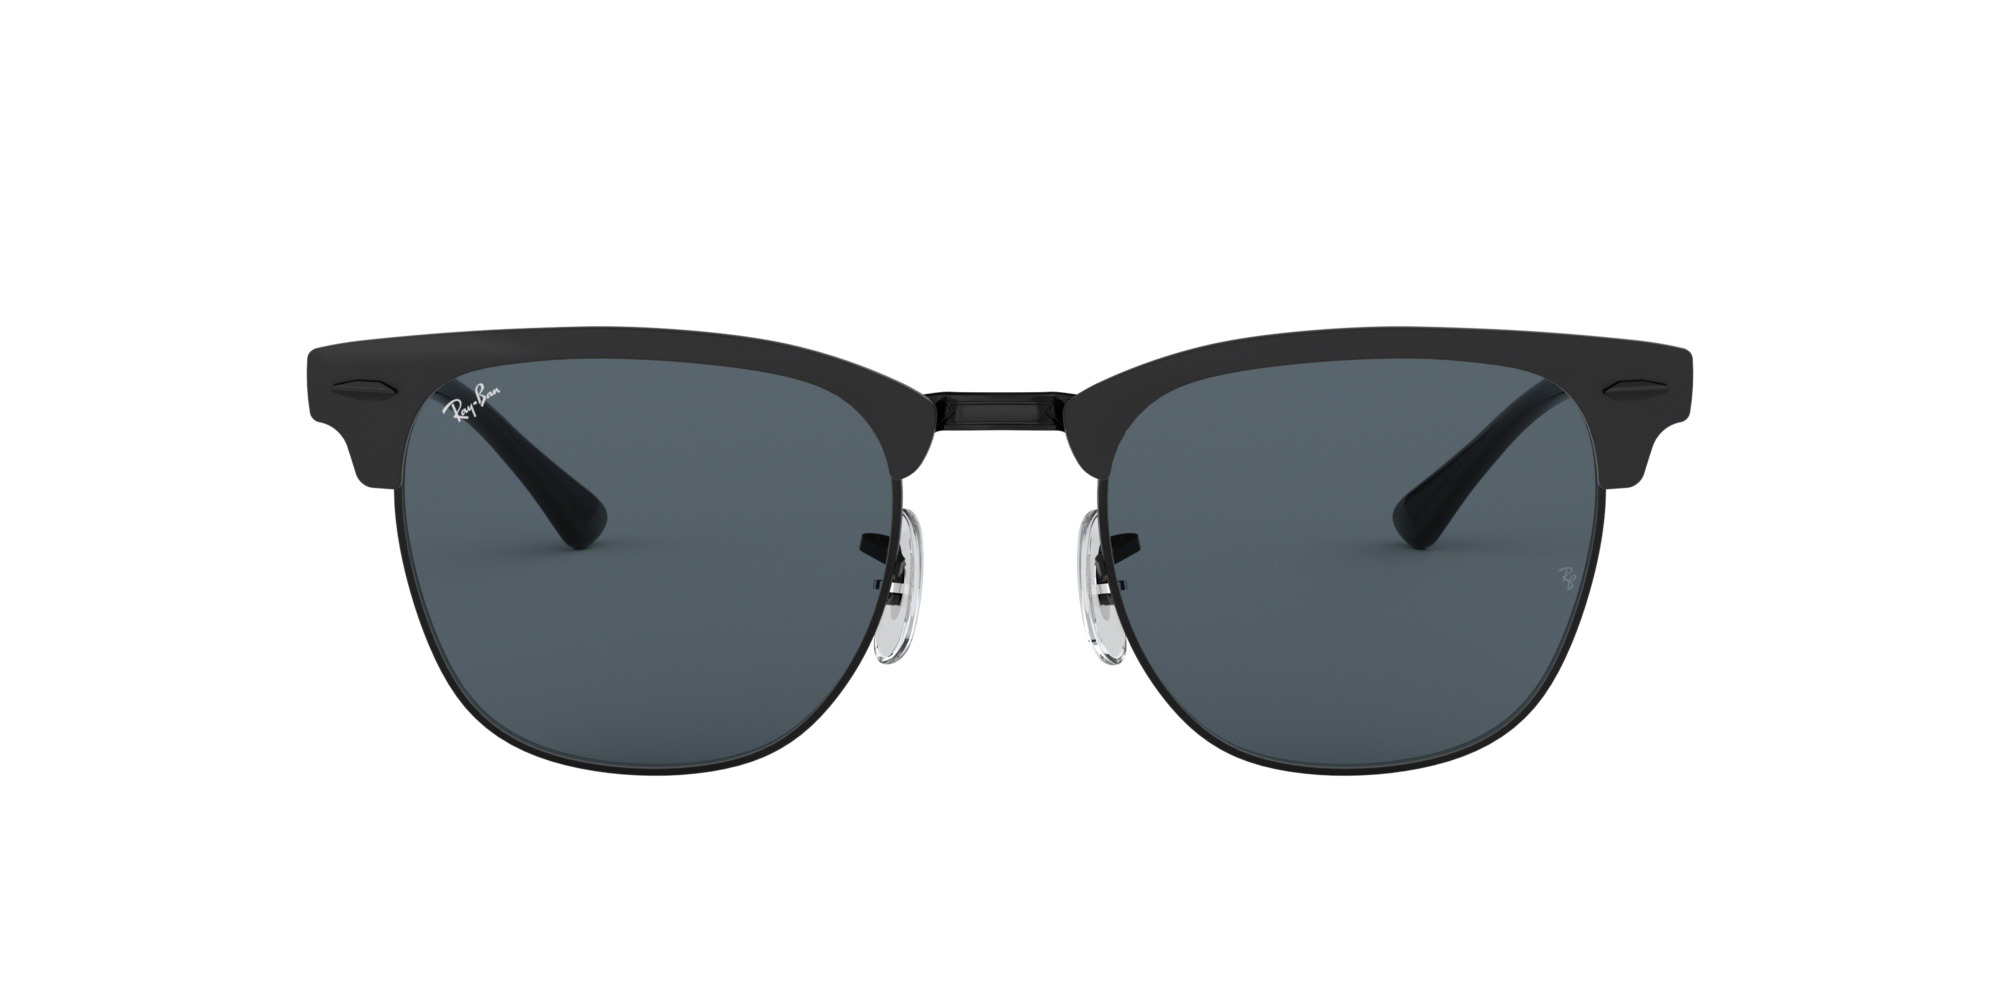 RAY-BAN CLUBMASTER METAL RB 3716 186/R5 -360